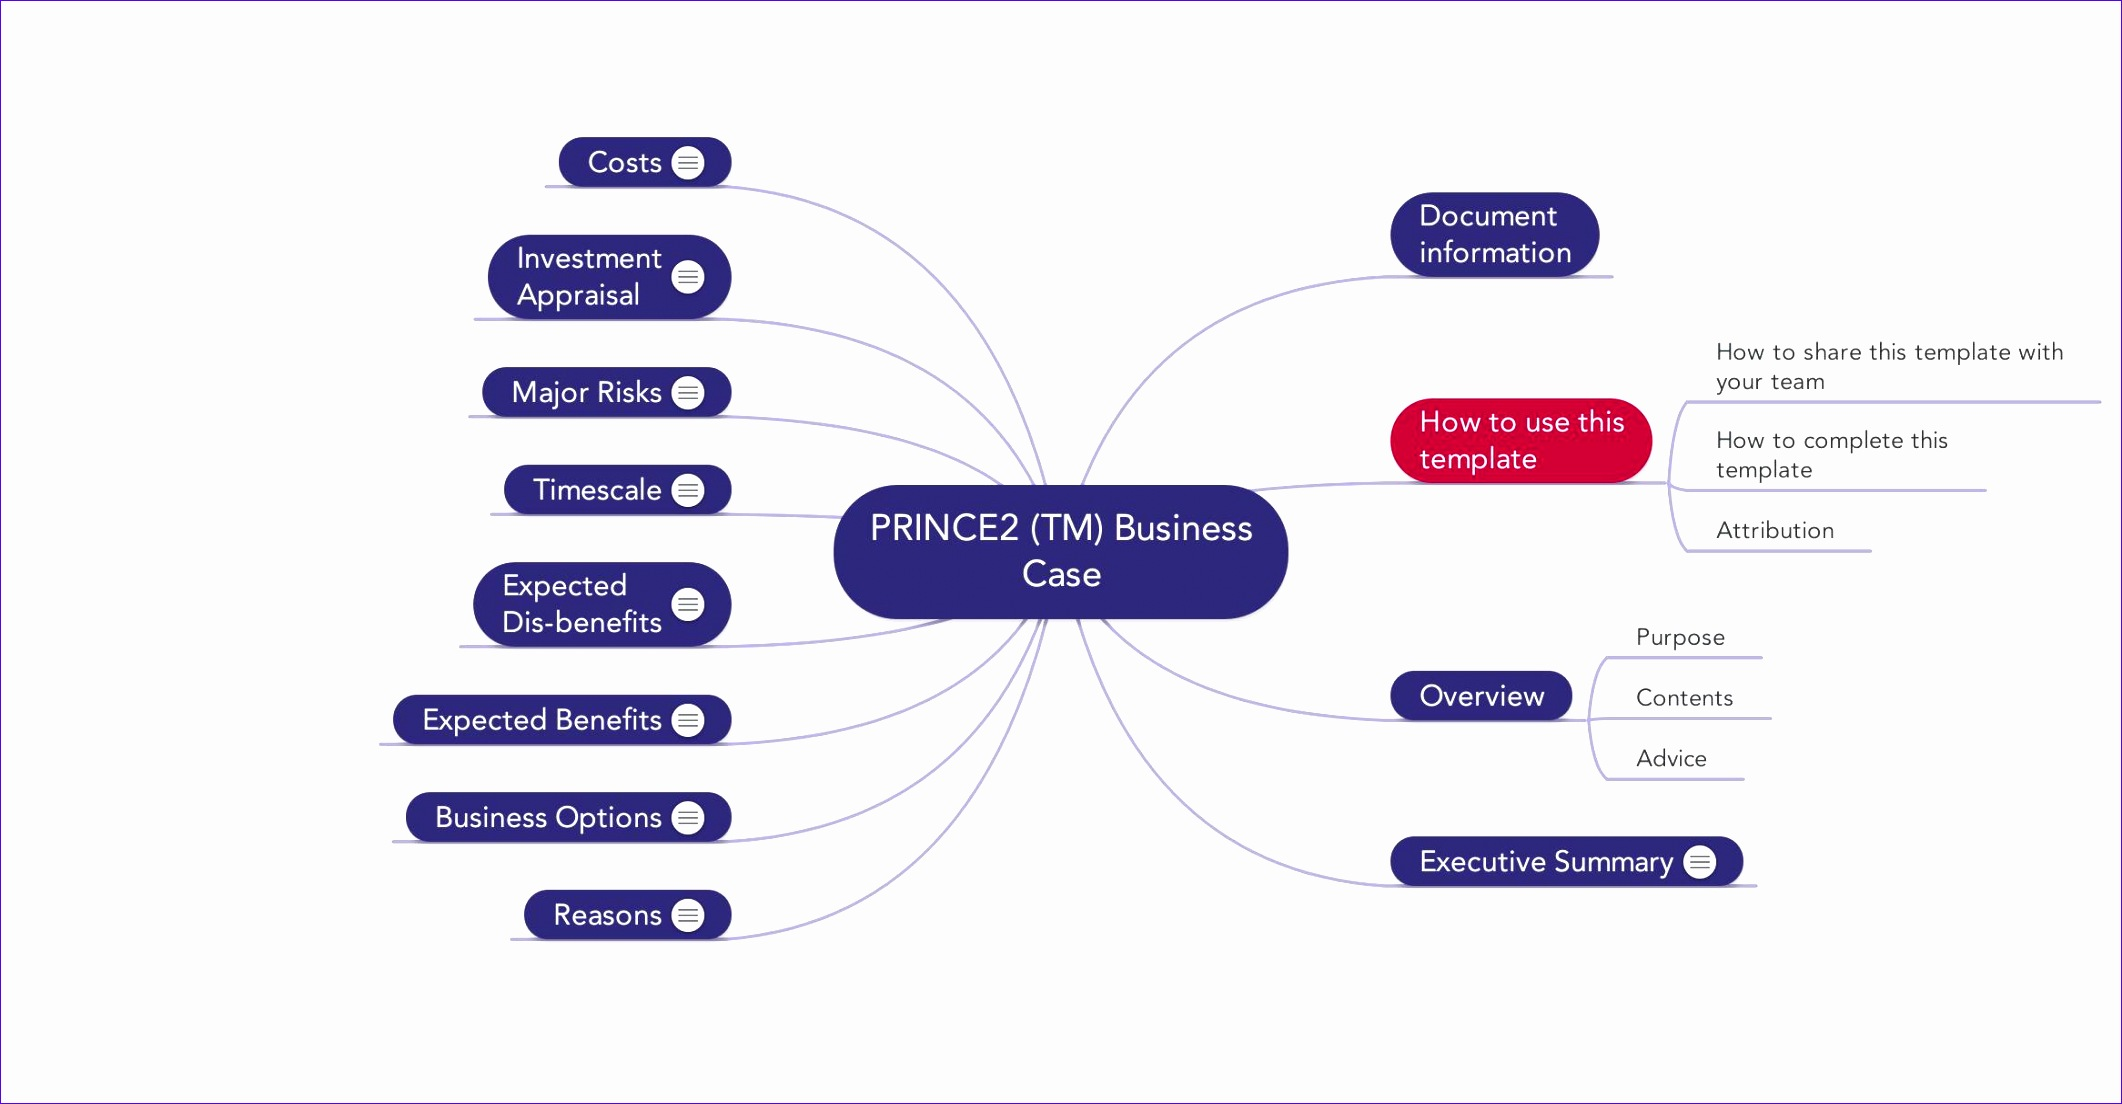 prince 2 business case 21221104